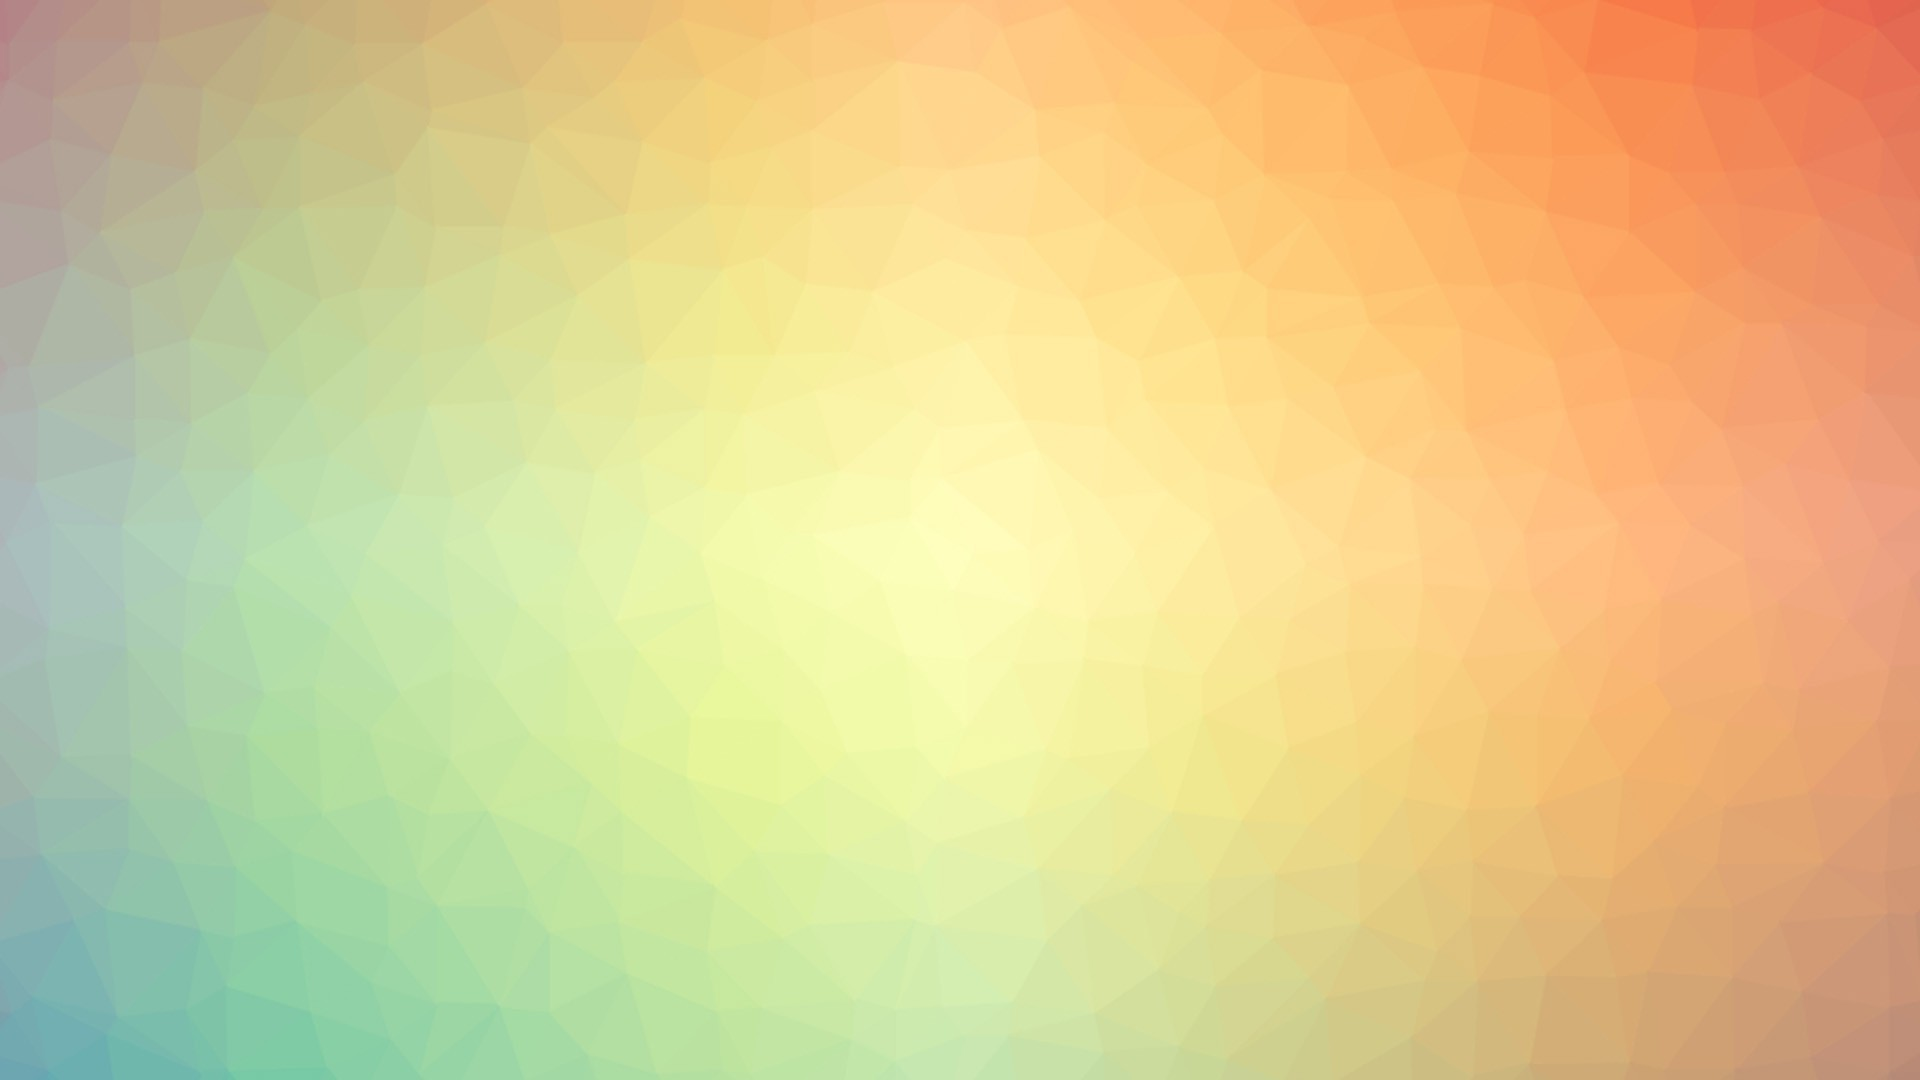 Blue And Orange Background: Light Blue And Yellow Wallpaper (54+ Images